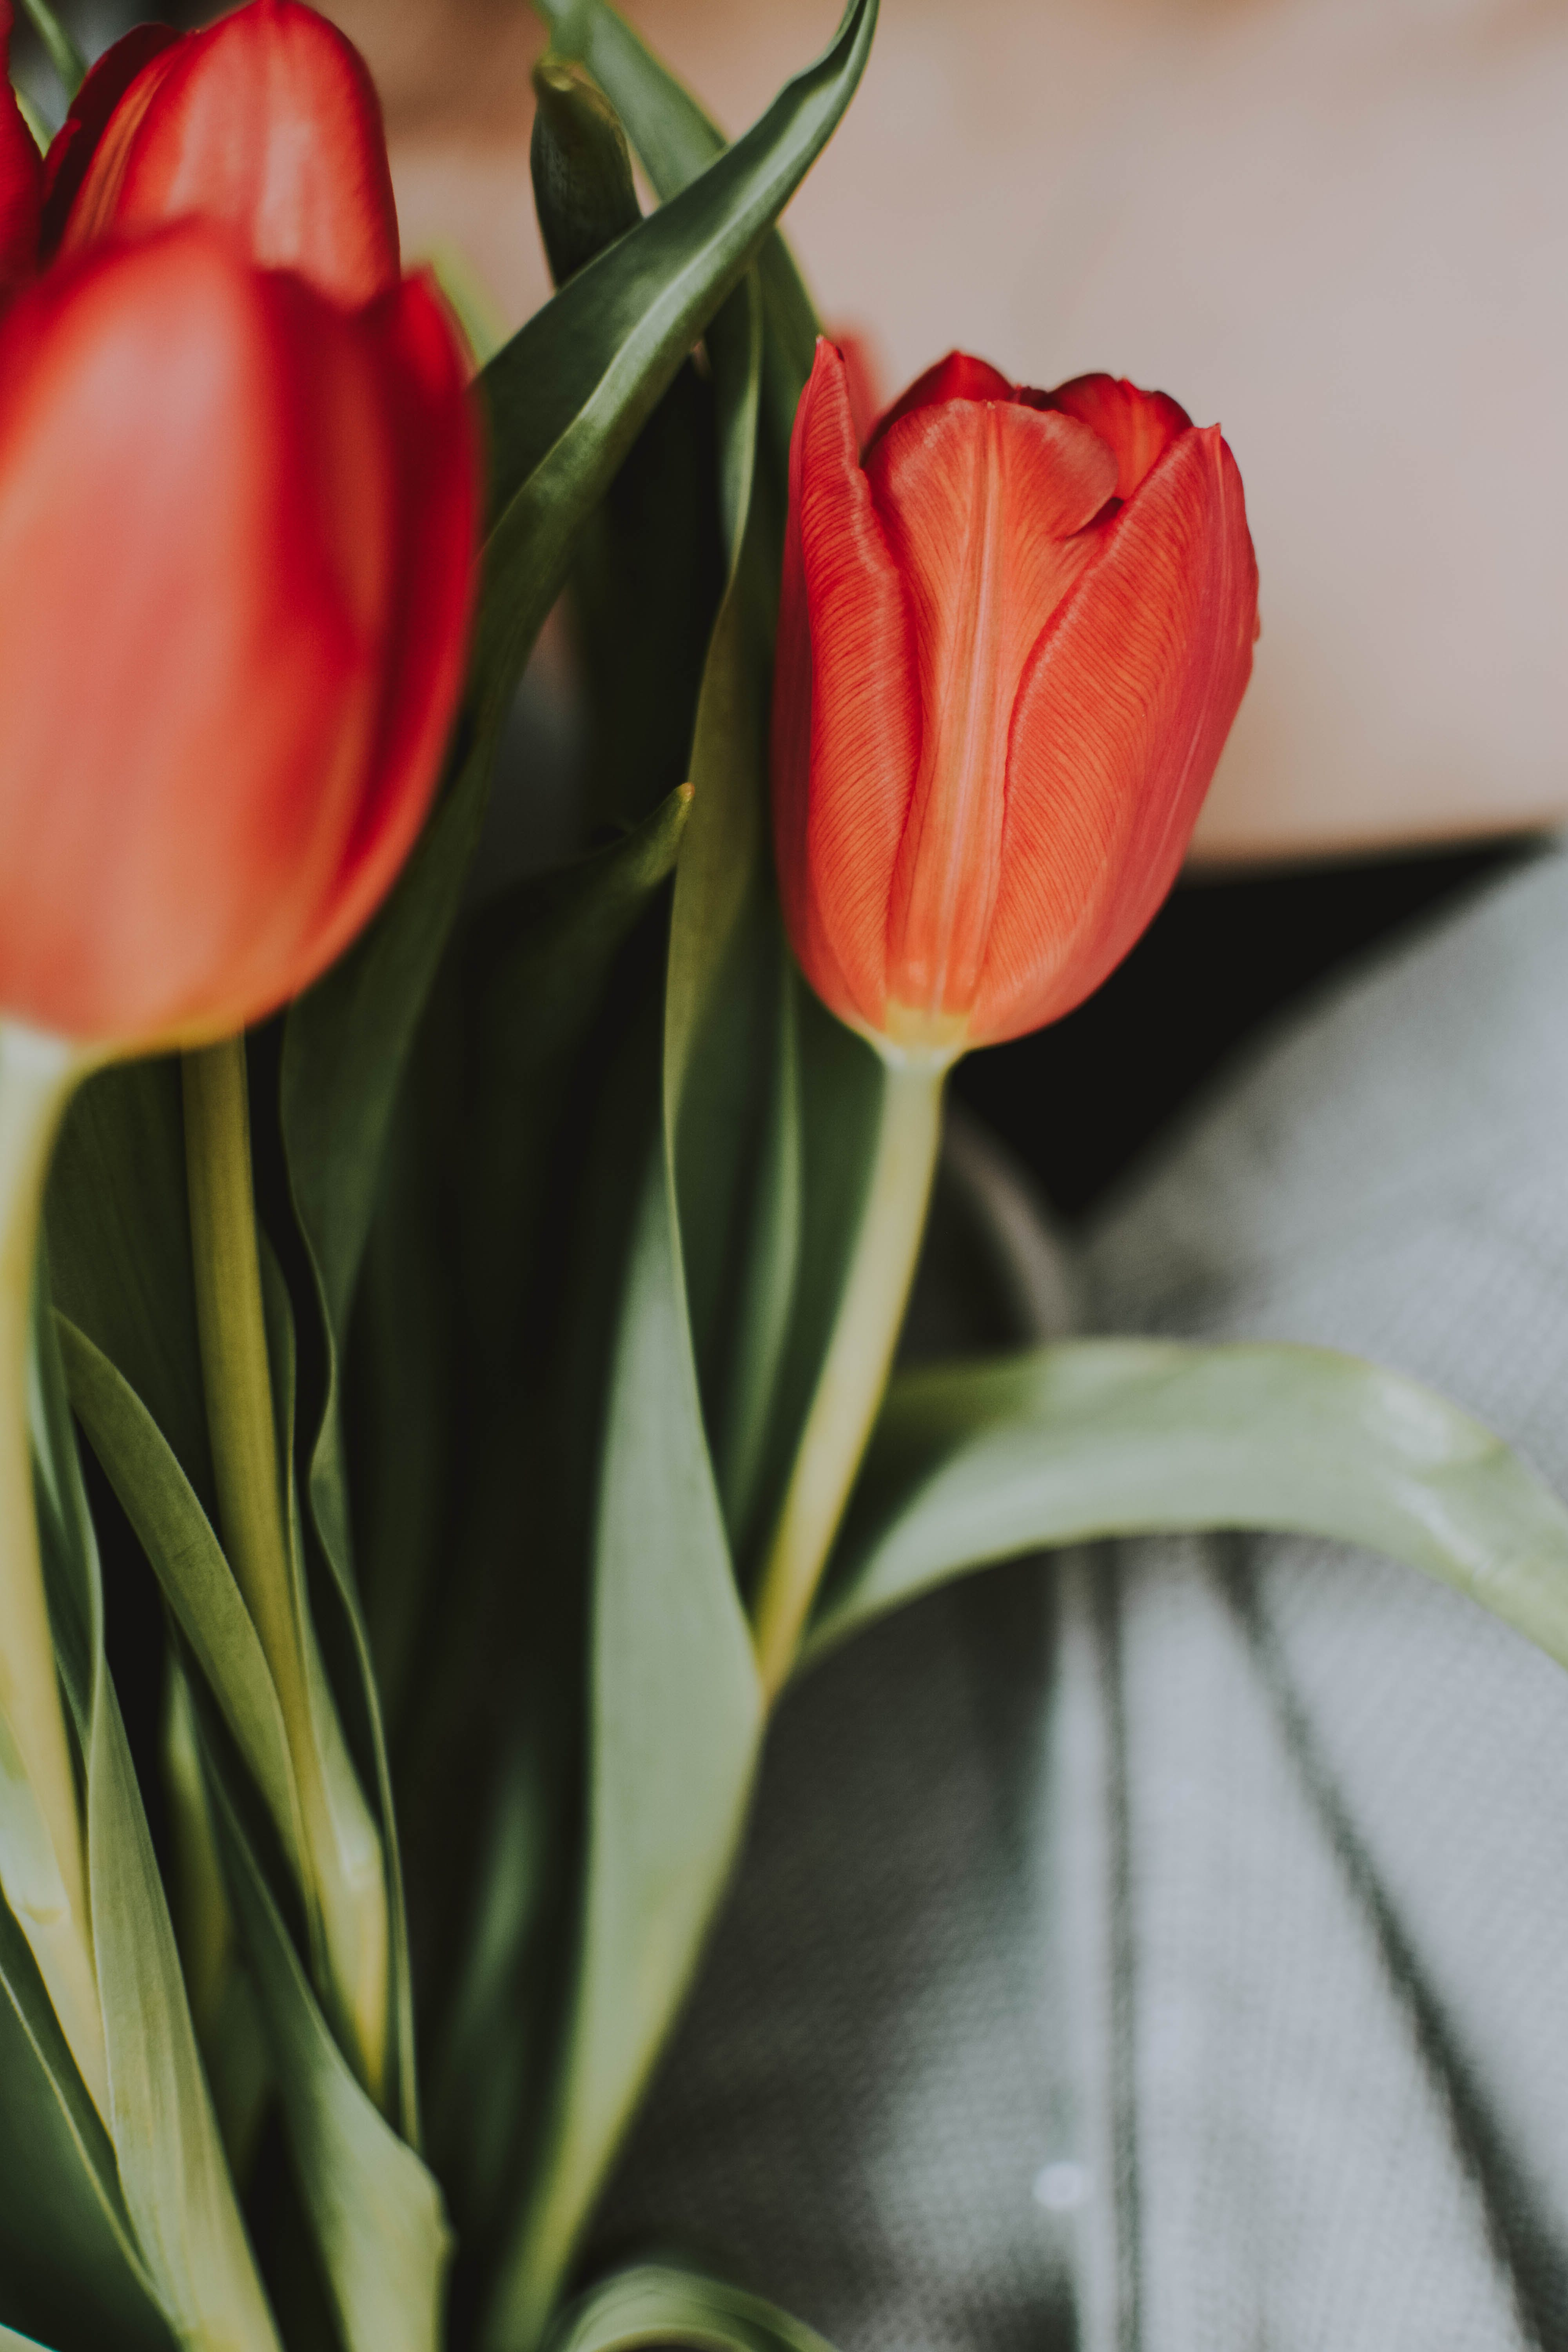 Free stock photo of bunch of flowers, flower, holding, red